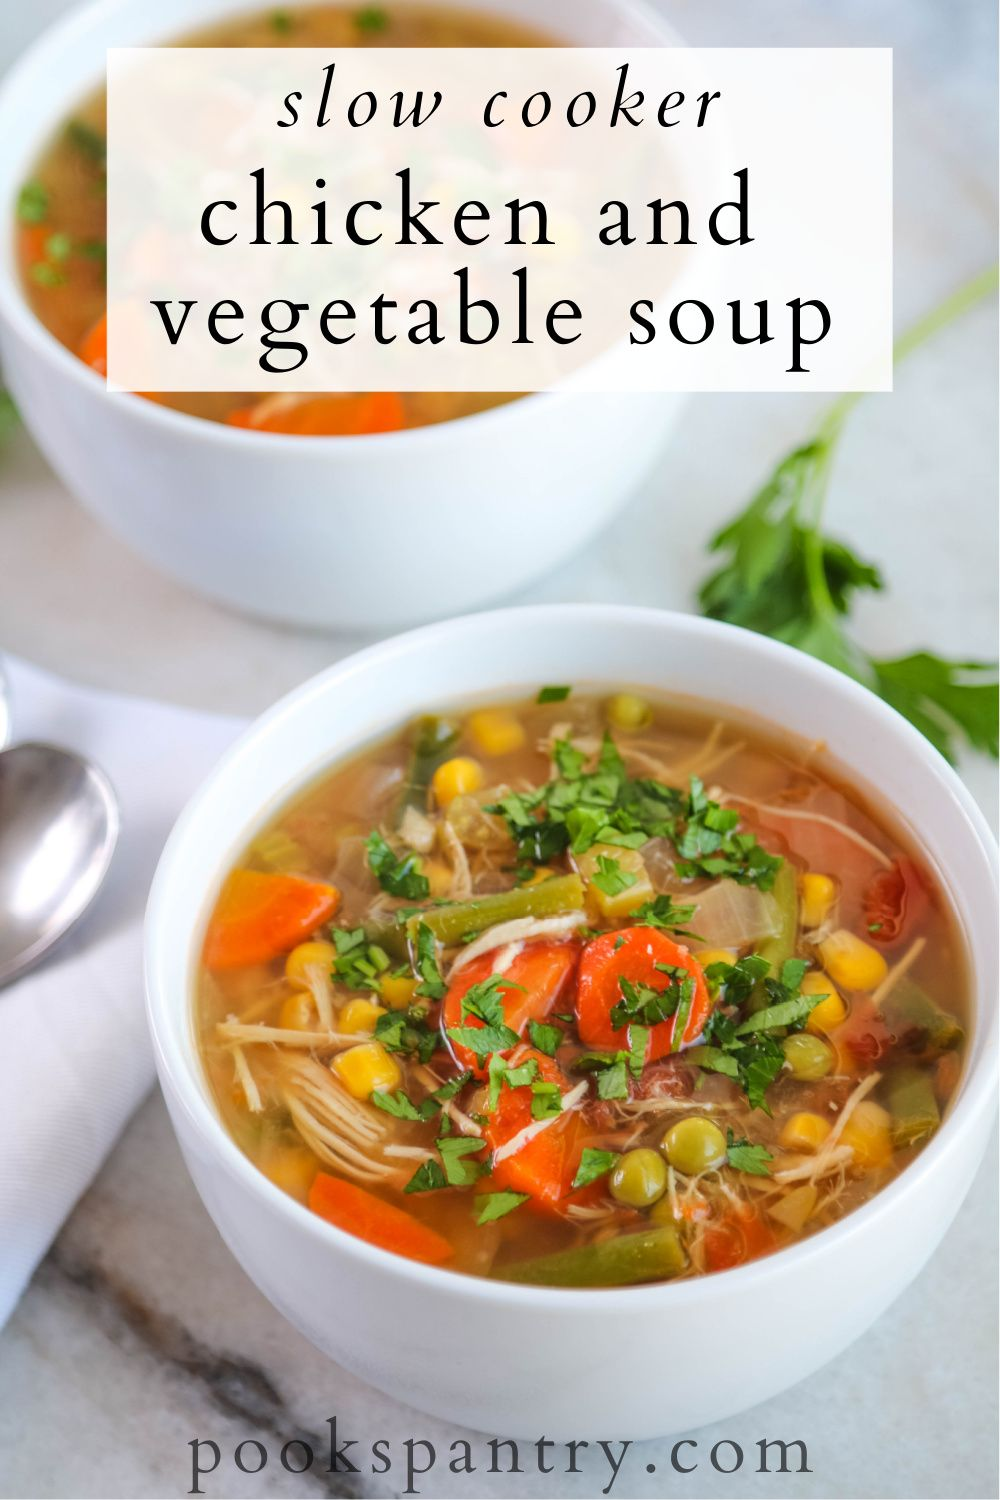 Crockpot Chicken Vegetable Soup Pook S Pantry Recipe Blog Recipe In 2020 Vegetable Soup With Chicken Slow Cooker Chicken Crockpot Chicken